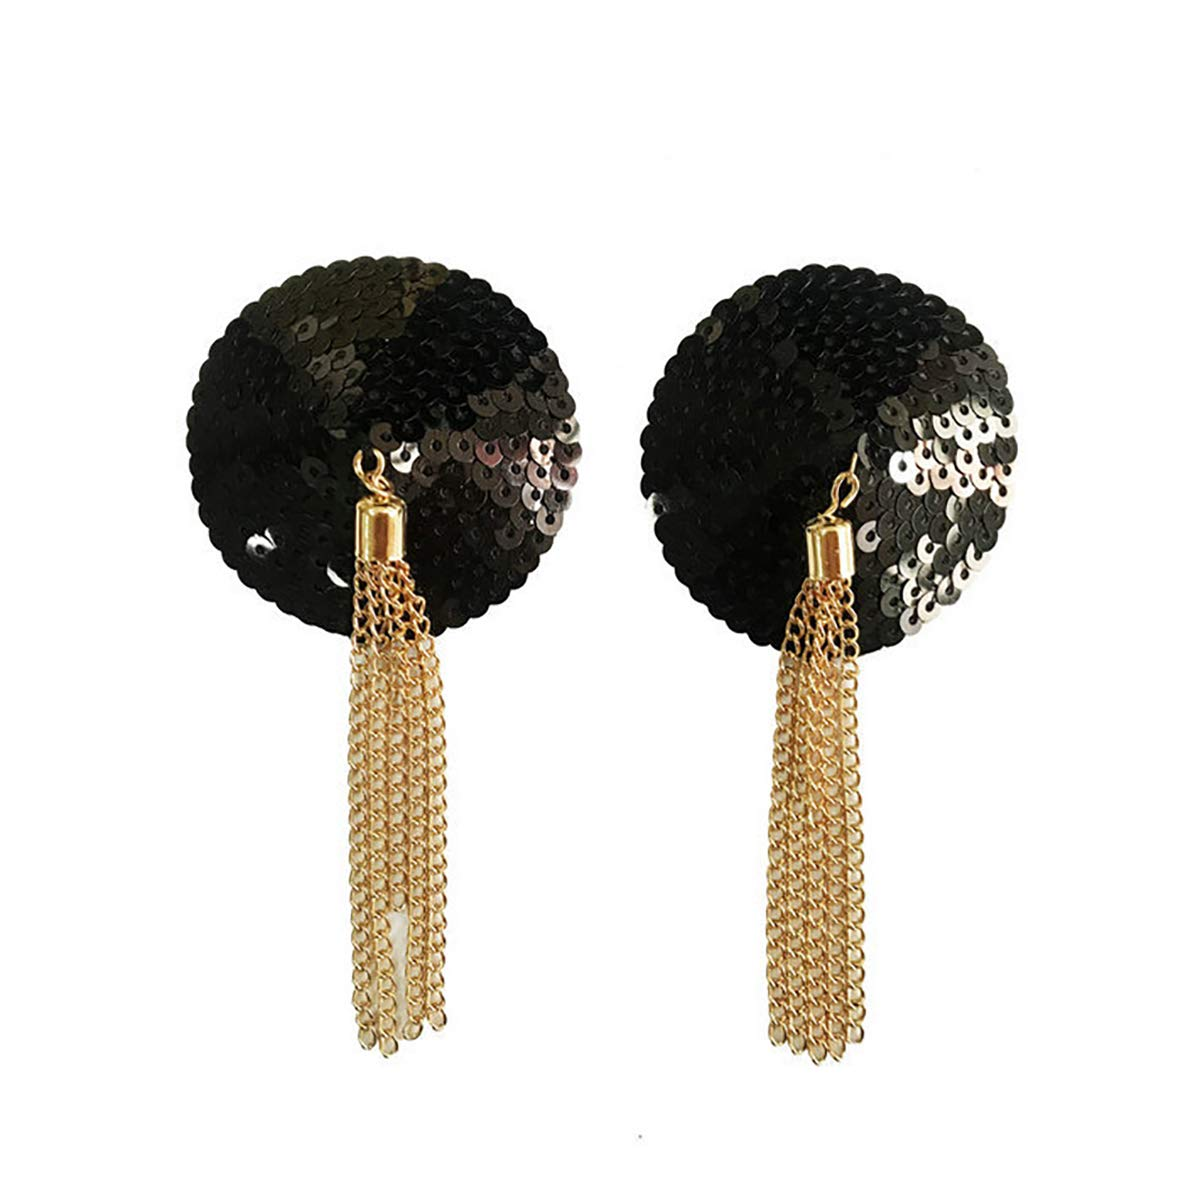 Shiny Sequin Lingerie Breast Bra Stickers Nipple Covers with Gold Metal Tassel